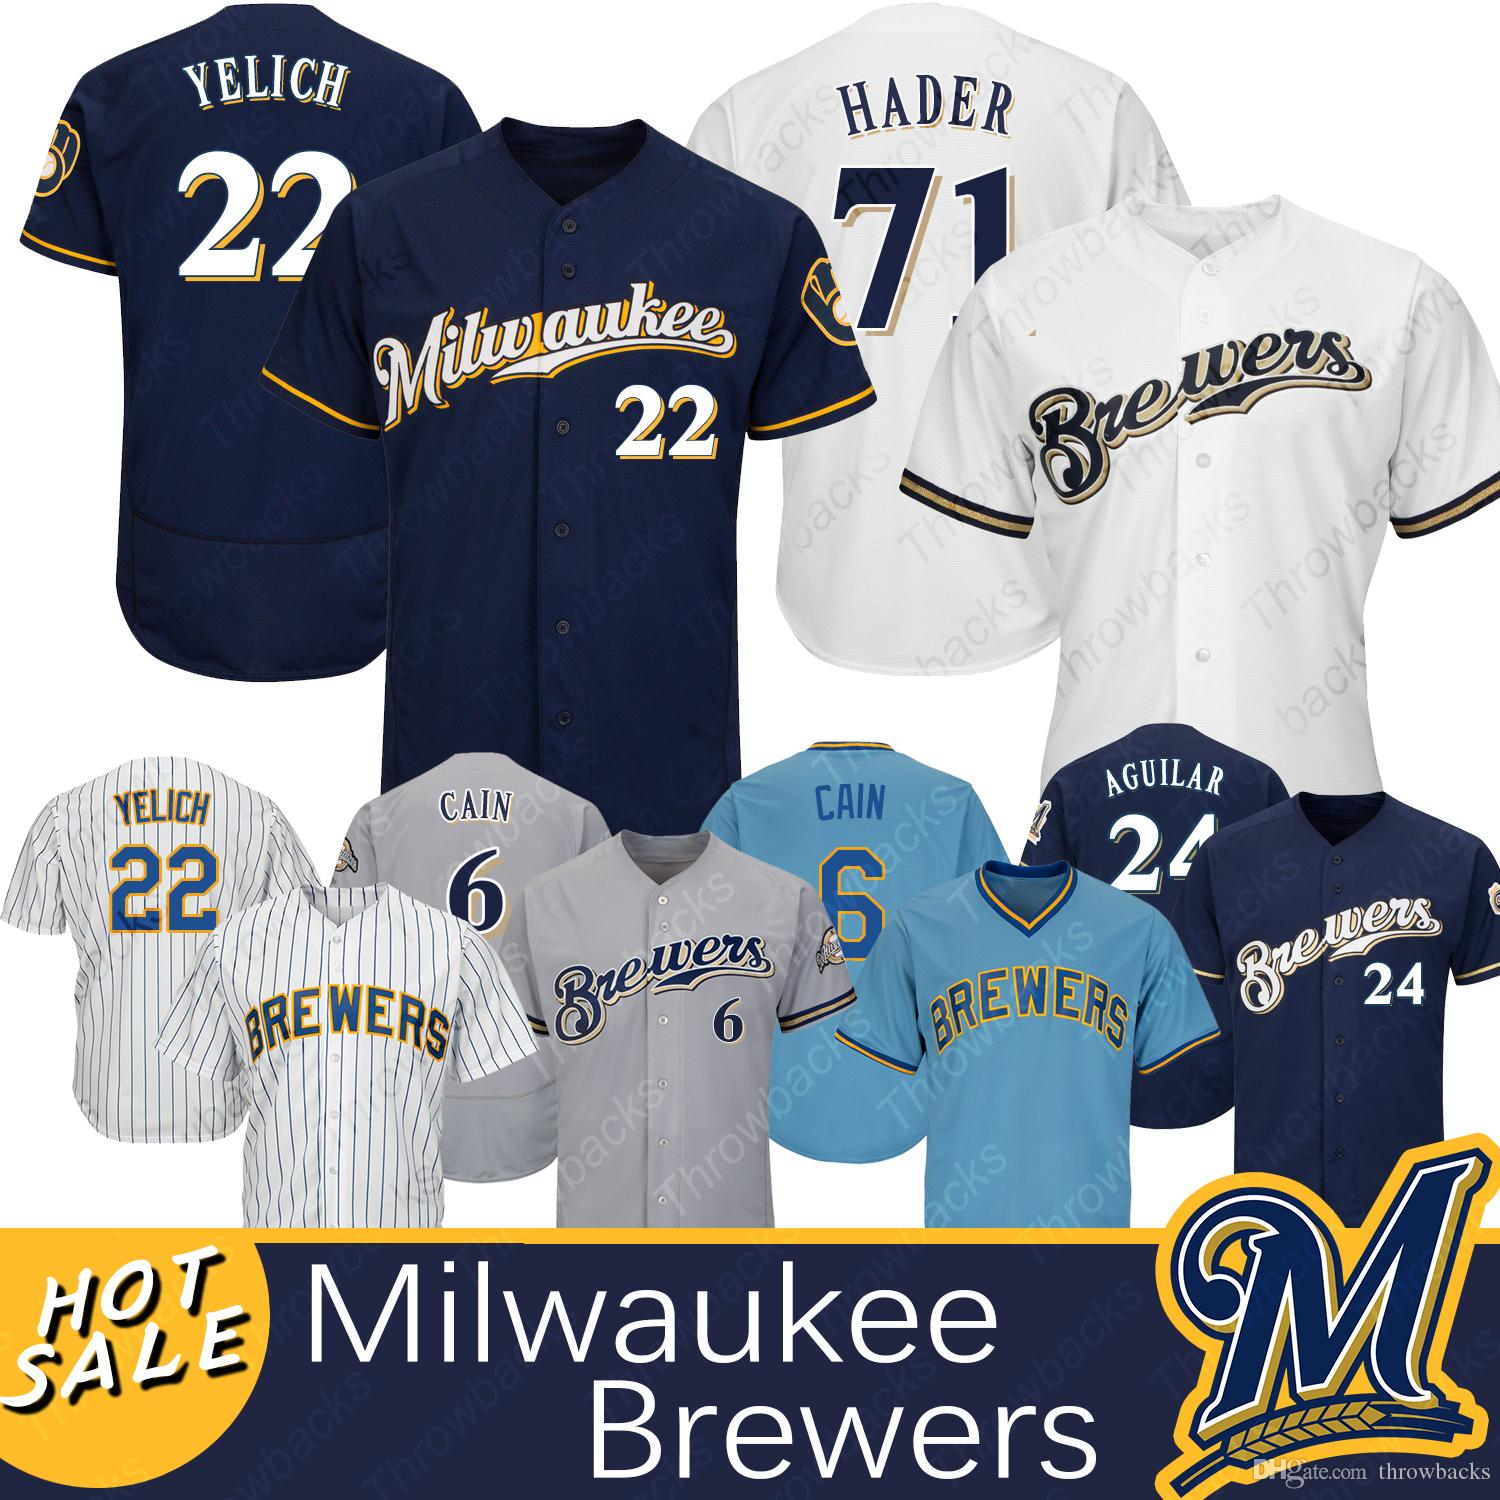 separation shoes 03bf2 514d9 Milwaukee Brewers jersey 22 Christian Yelich 71 Josh Hader 24 Jesus Aguilar  6 Lorenzo Cain Baseball Jerseys